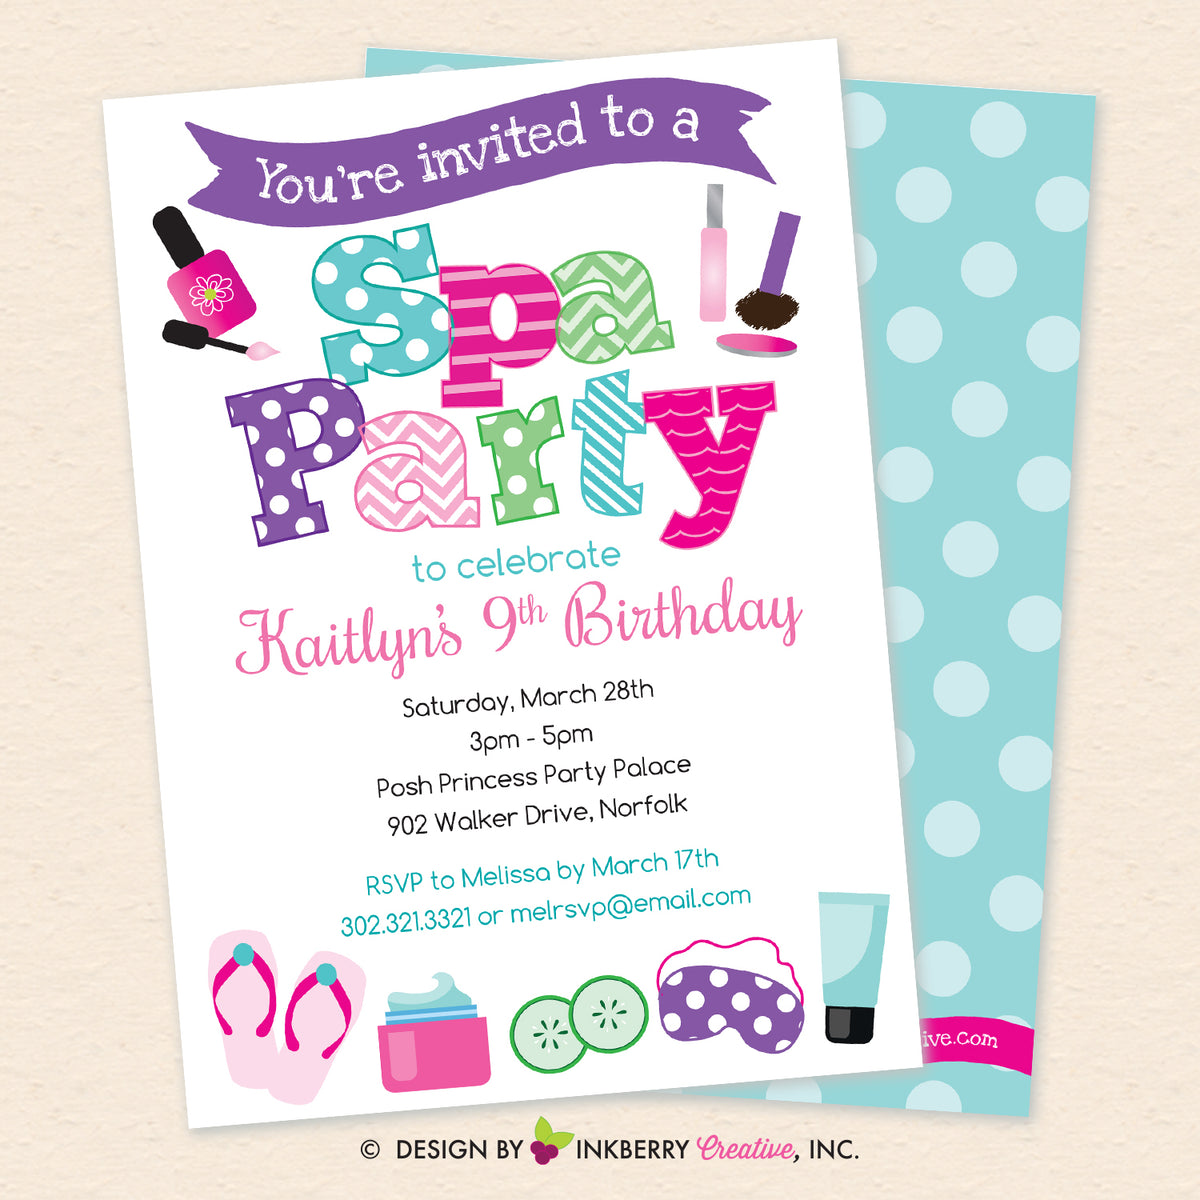 picture relating to Birthday Party Invitations Printable called Spa Birthday Social gathering Invitation - Printable, Quick Down load, Editable, PDF